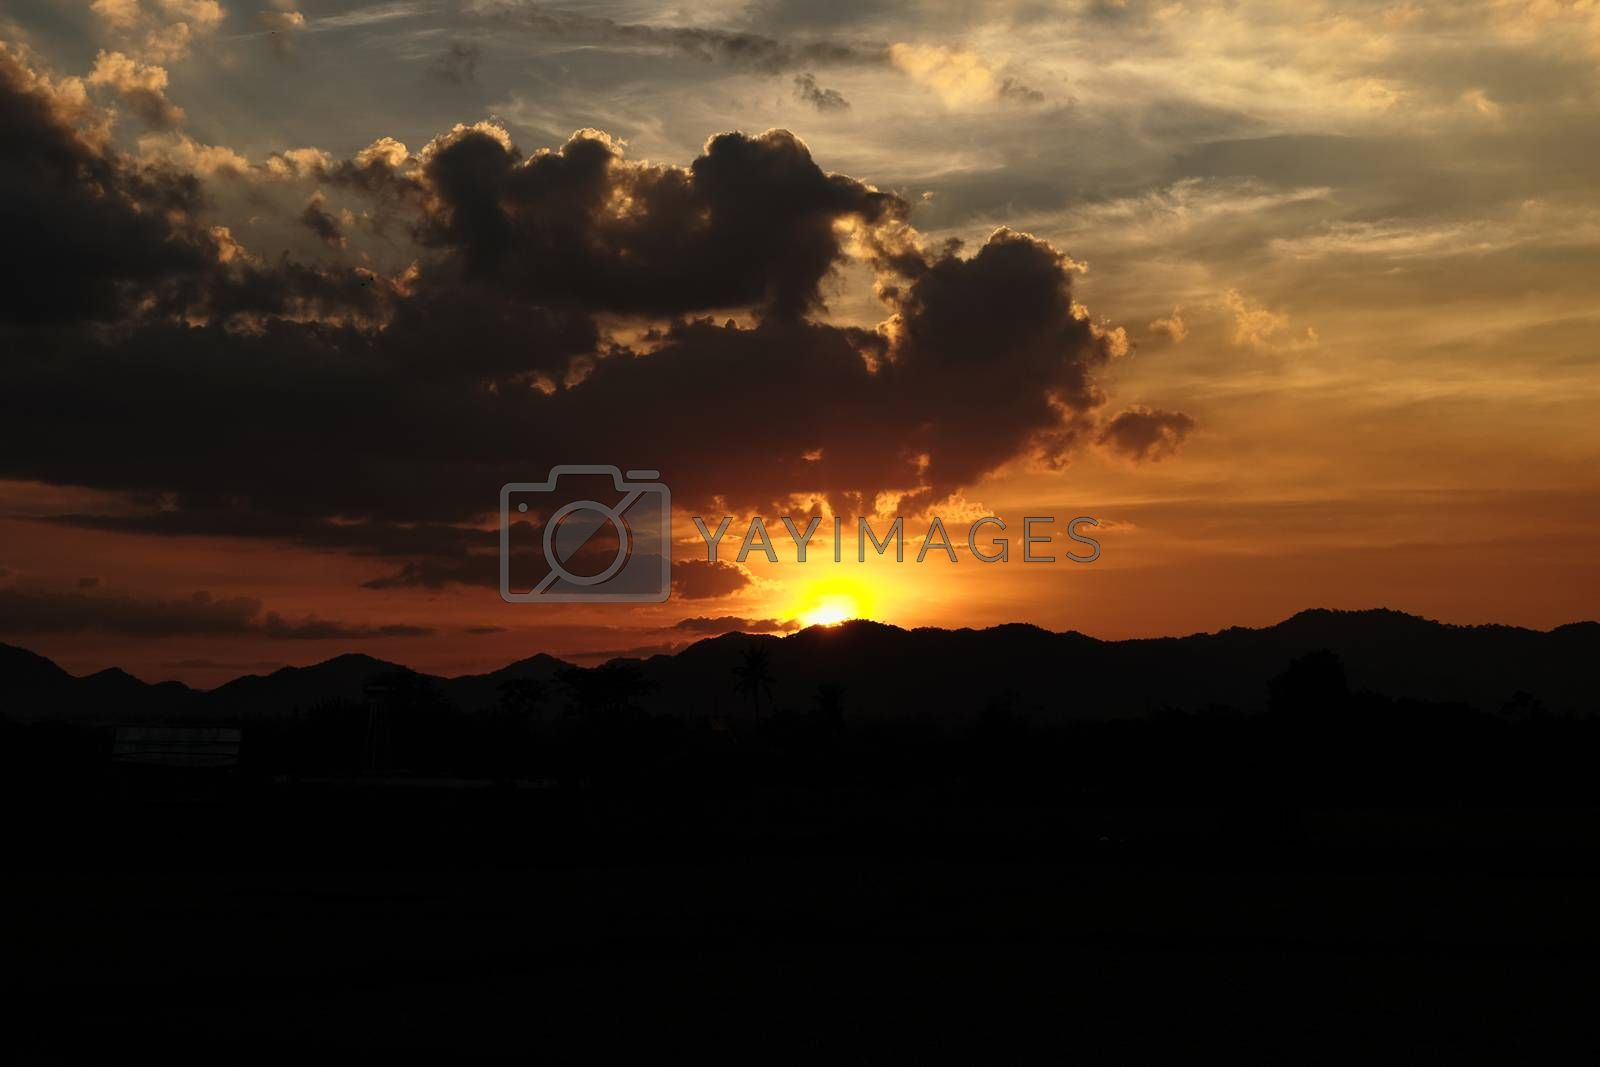 sky clouds sunset and sunlight background